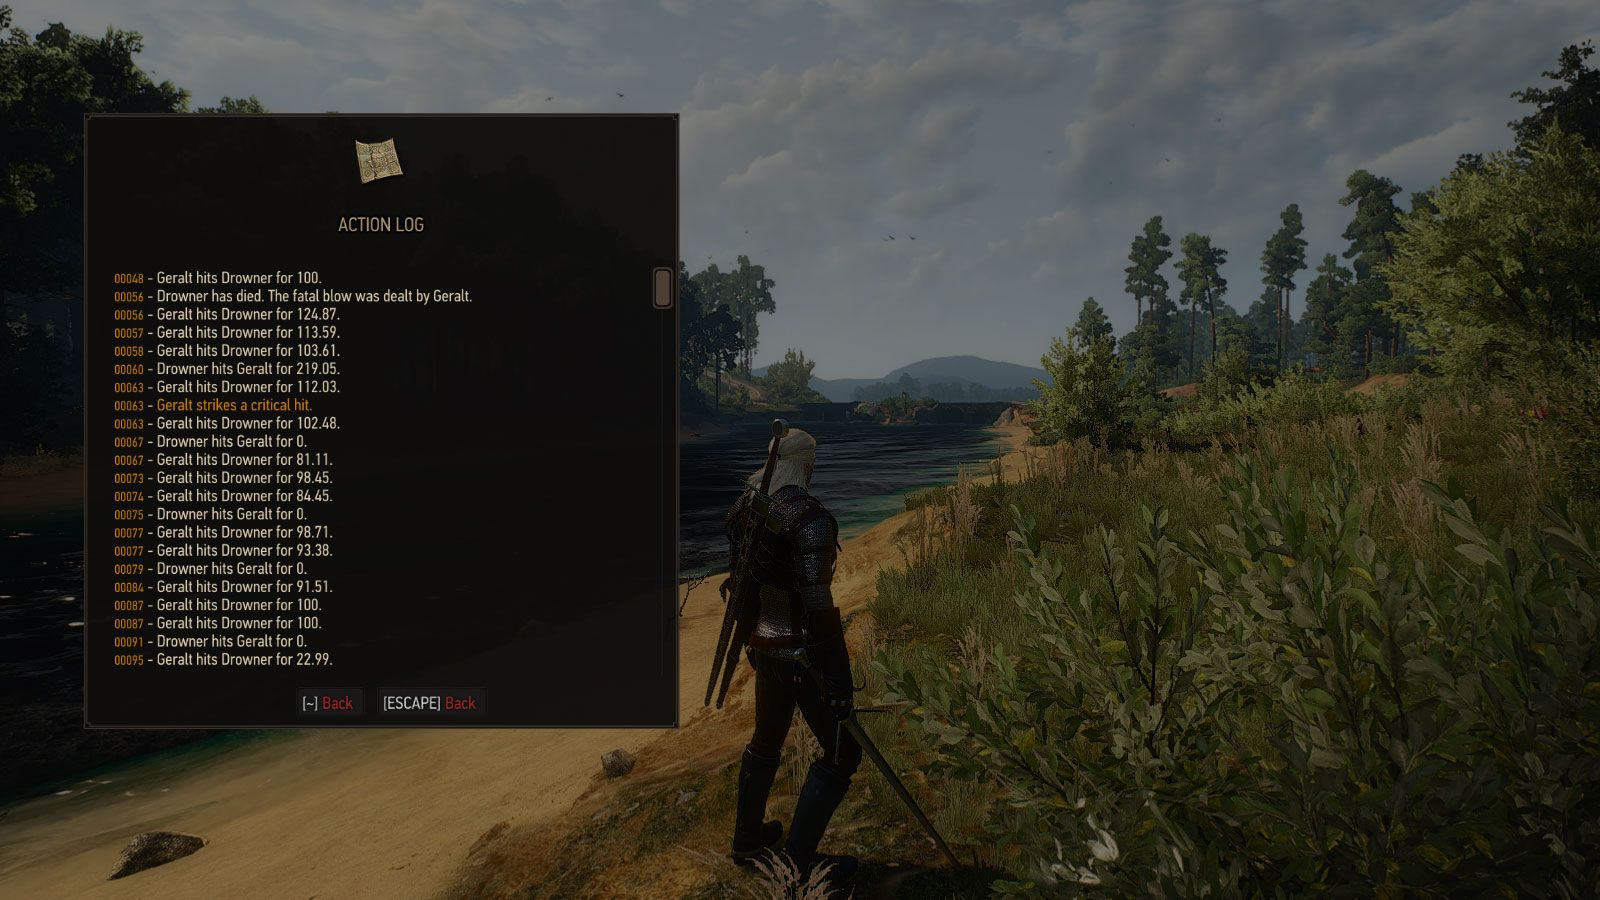 Action Log at The Witcher 3 Nexus - Mods and community | My